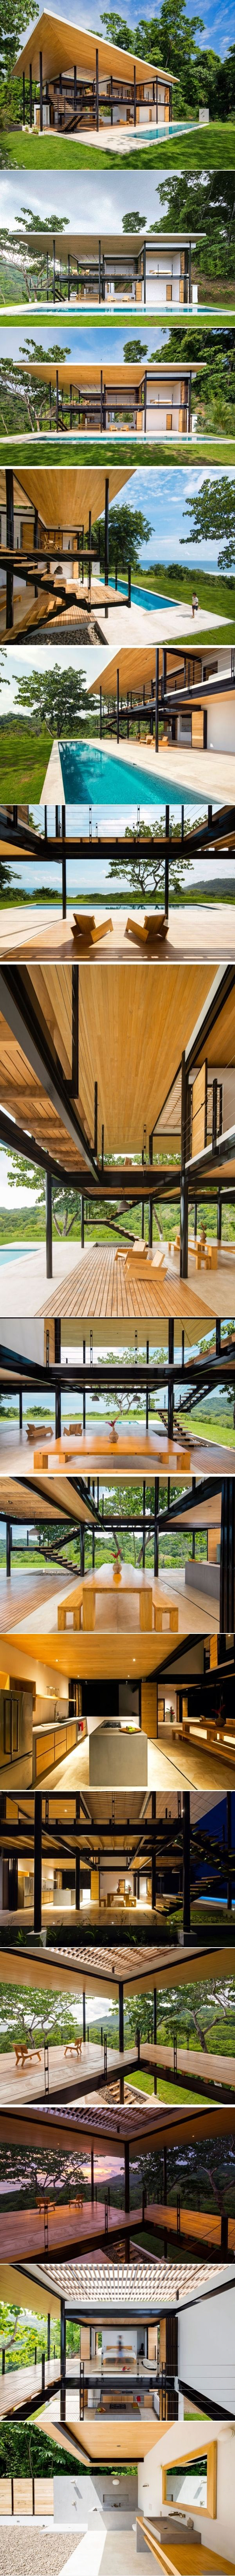 This Tropical House Is Almost Completely Open To The Outside | CONTEMPORIST